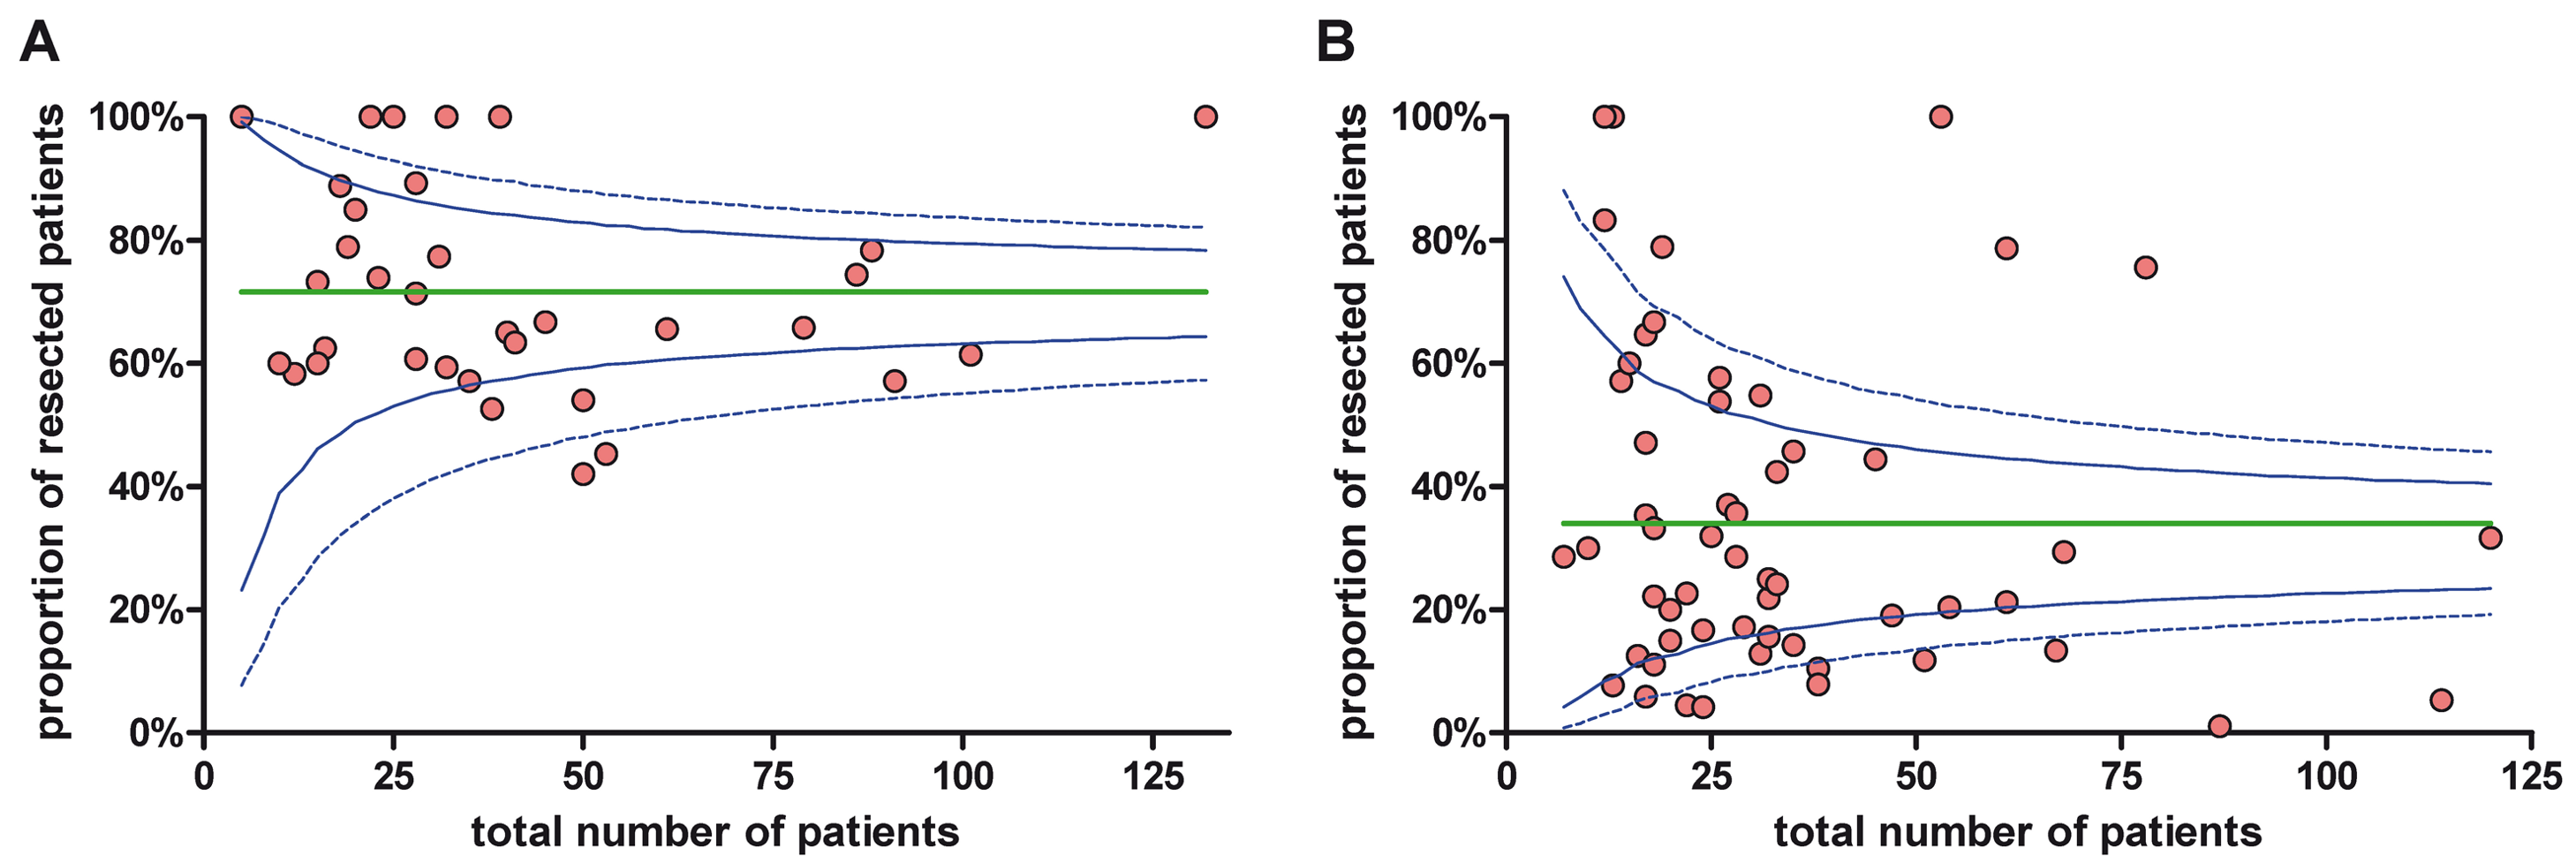 Funnel plots for the resection rate for studies analyzing initially resectable (A) and non-resectable (B) tumor patients.